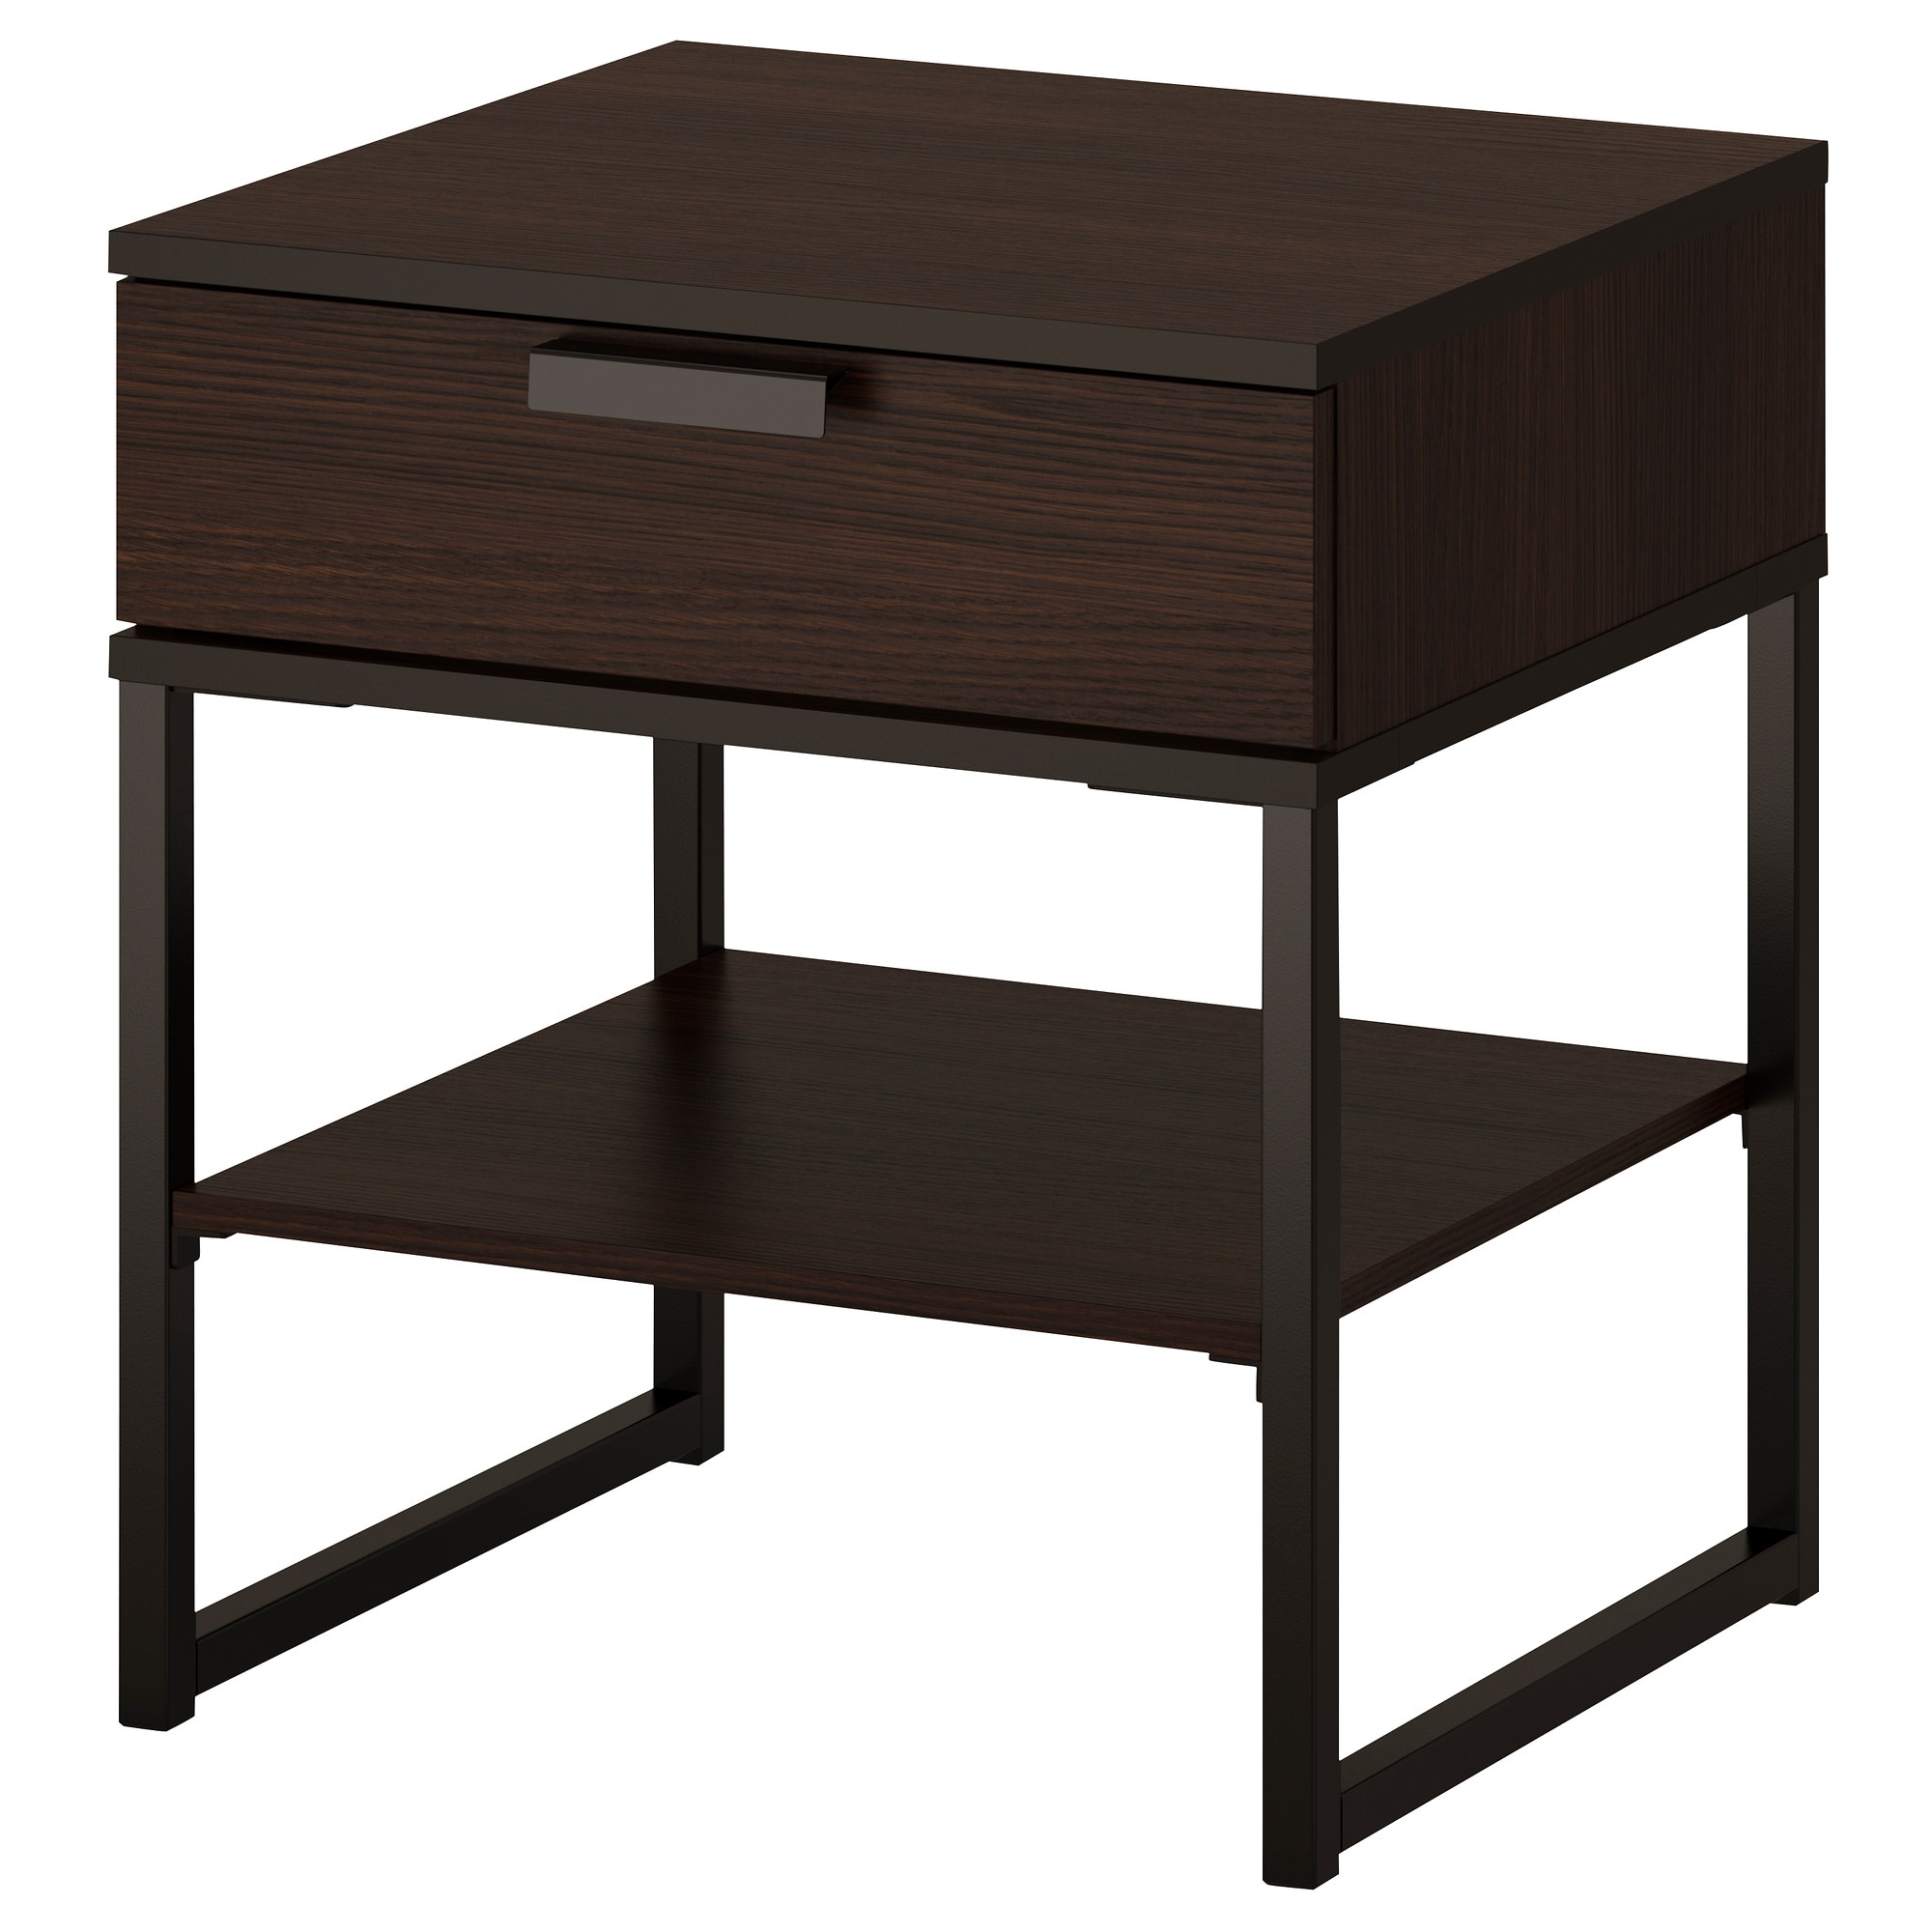 luxury ikea bed frame side table insured by ross. Black Bedroom Furniture Sets. Home Design Ideas